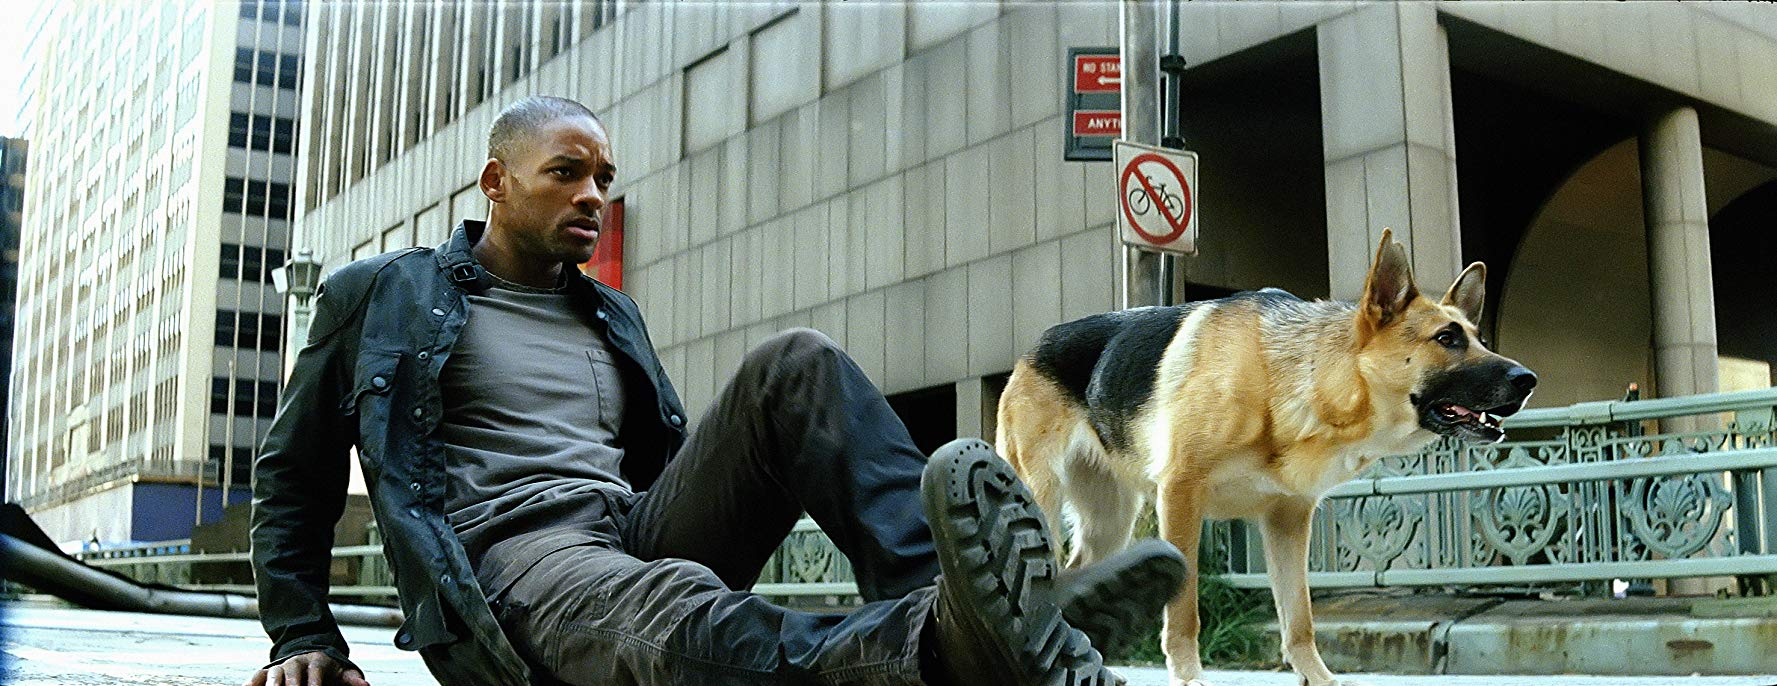 Я легенда (I Am Legend) 2007